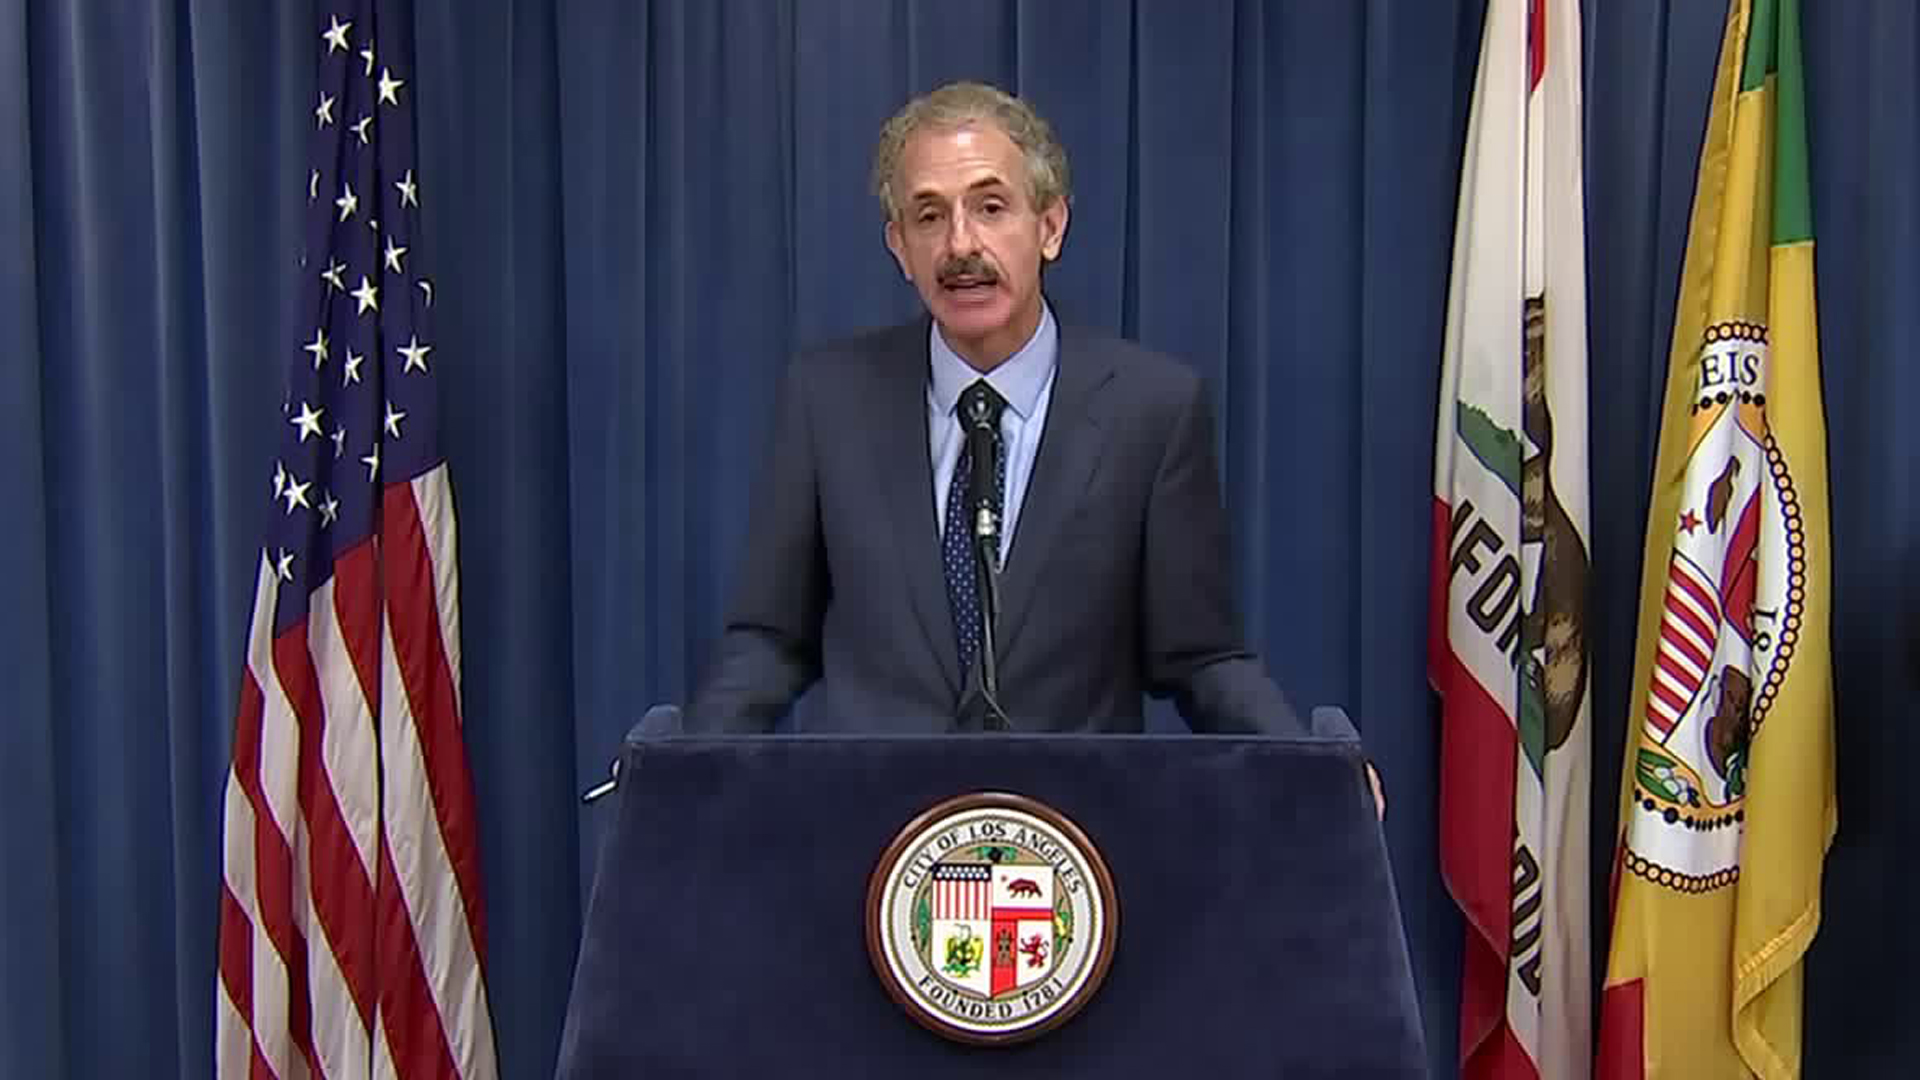 Los Angeles City Attorney Mike Feuer gives a coronavirus briefing on May 15, 2020.